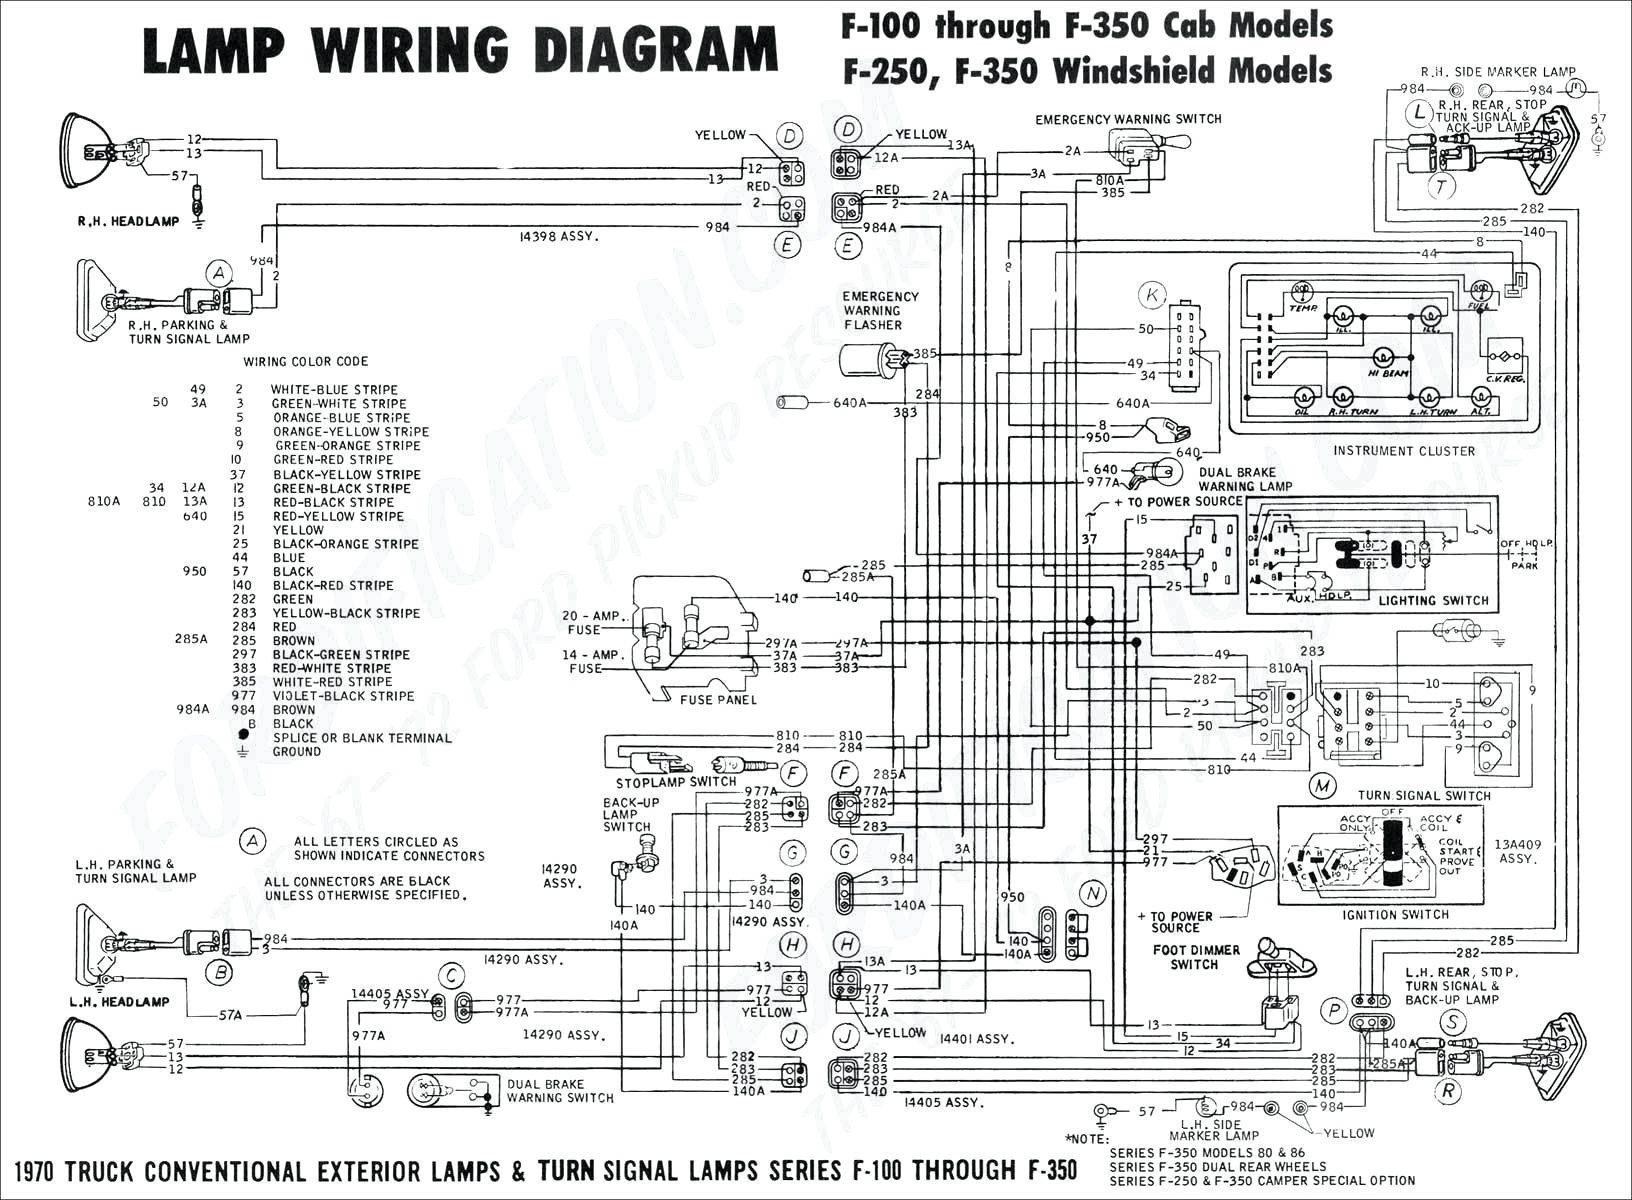 2001 dodge caravan stereo wiring diagram